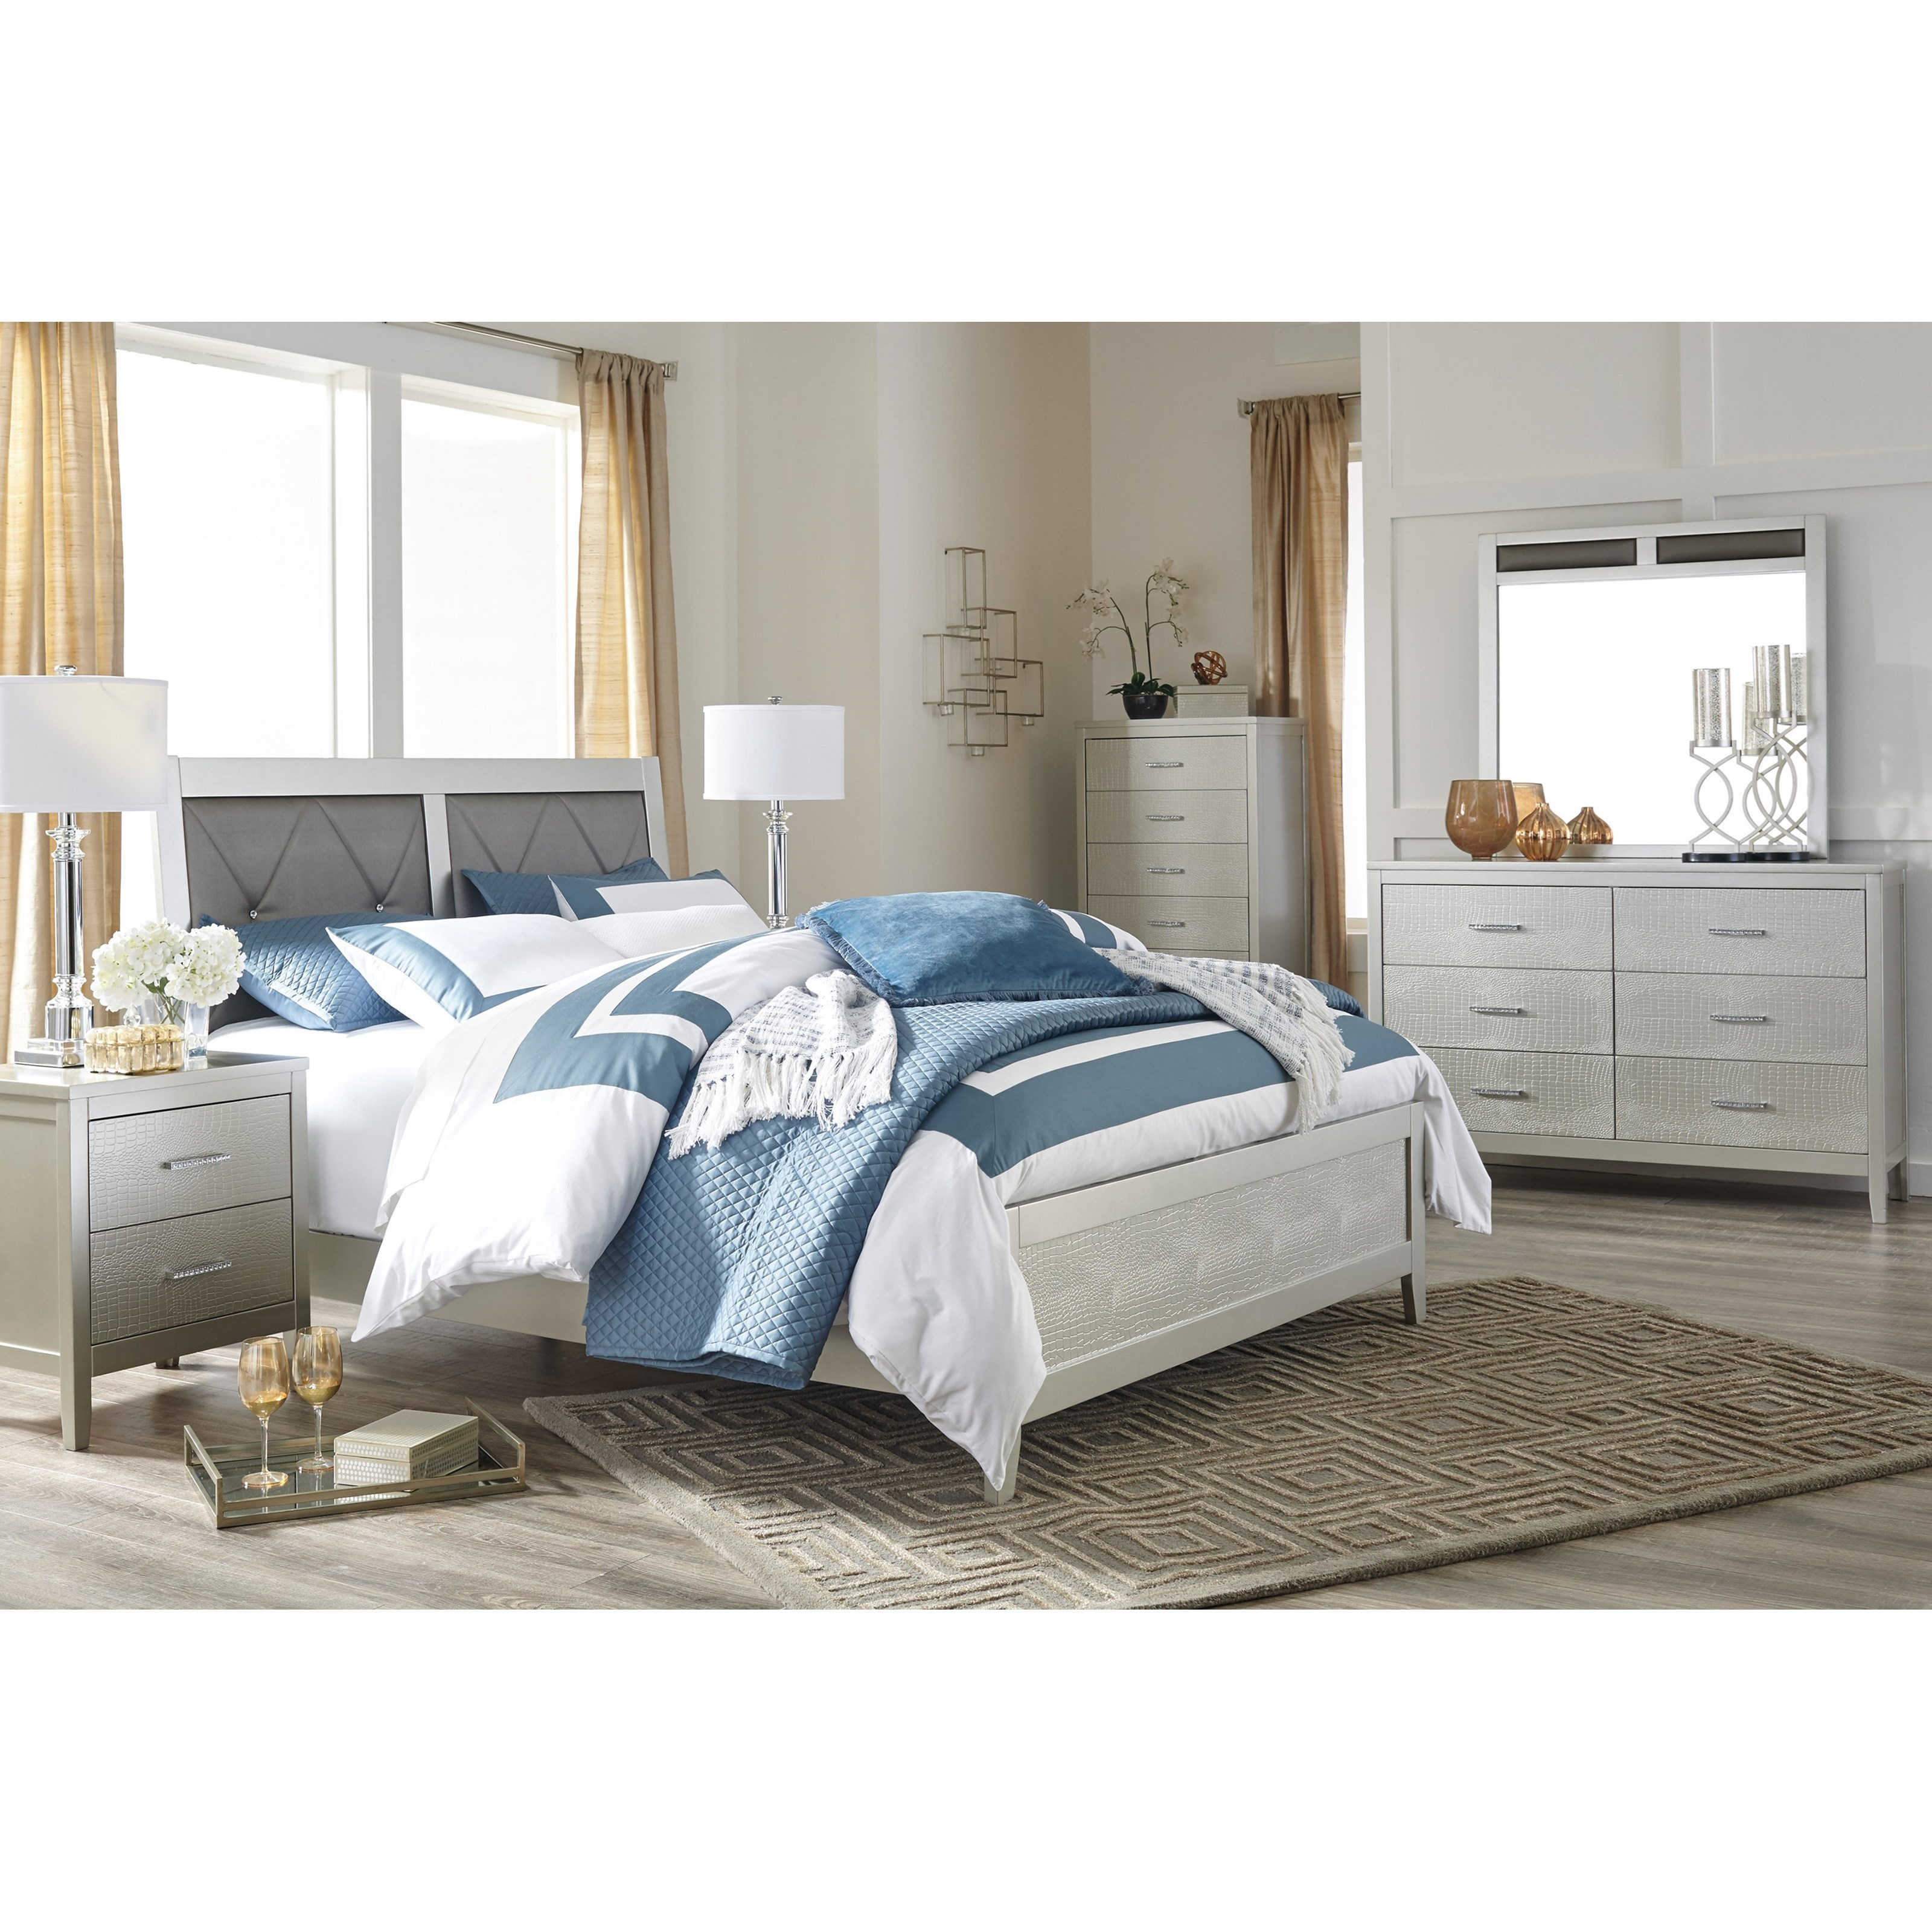 Signature Design By Ashley Olivet Glam Queen Bedroom Group